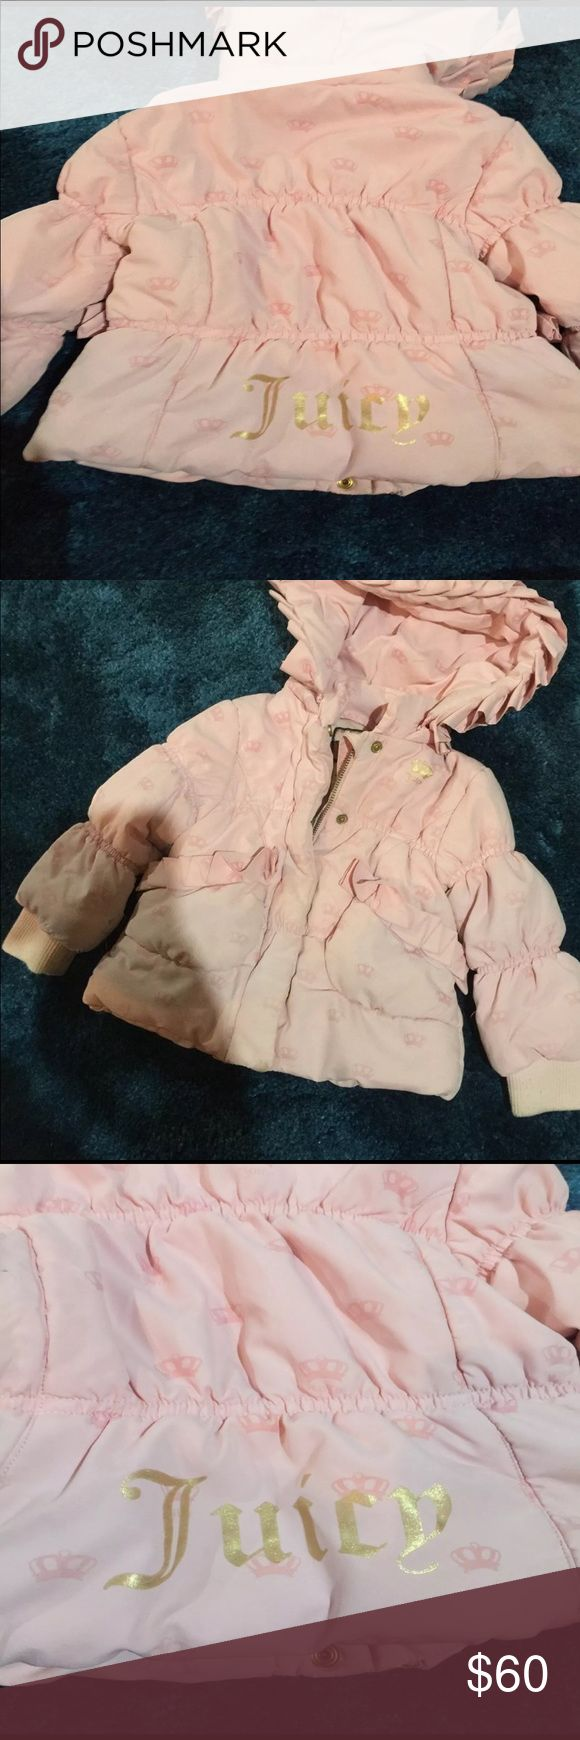 Infant-toddler Juicy Couture Jacket-Coat Size 18 Months  Juicy couture  Pink with juicy logo on back and removable hood Juicy Couture Jackets & Coats